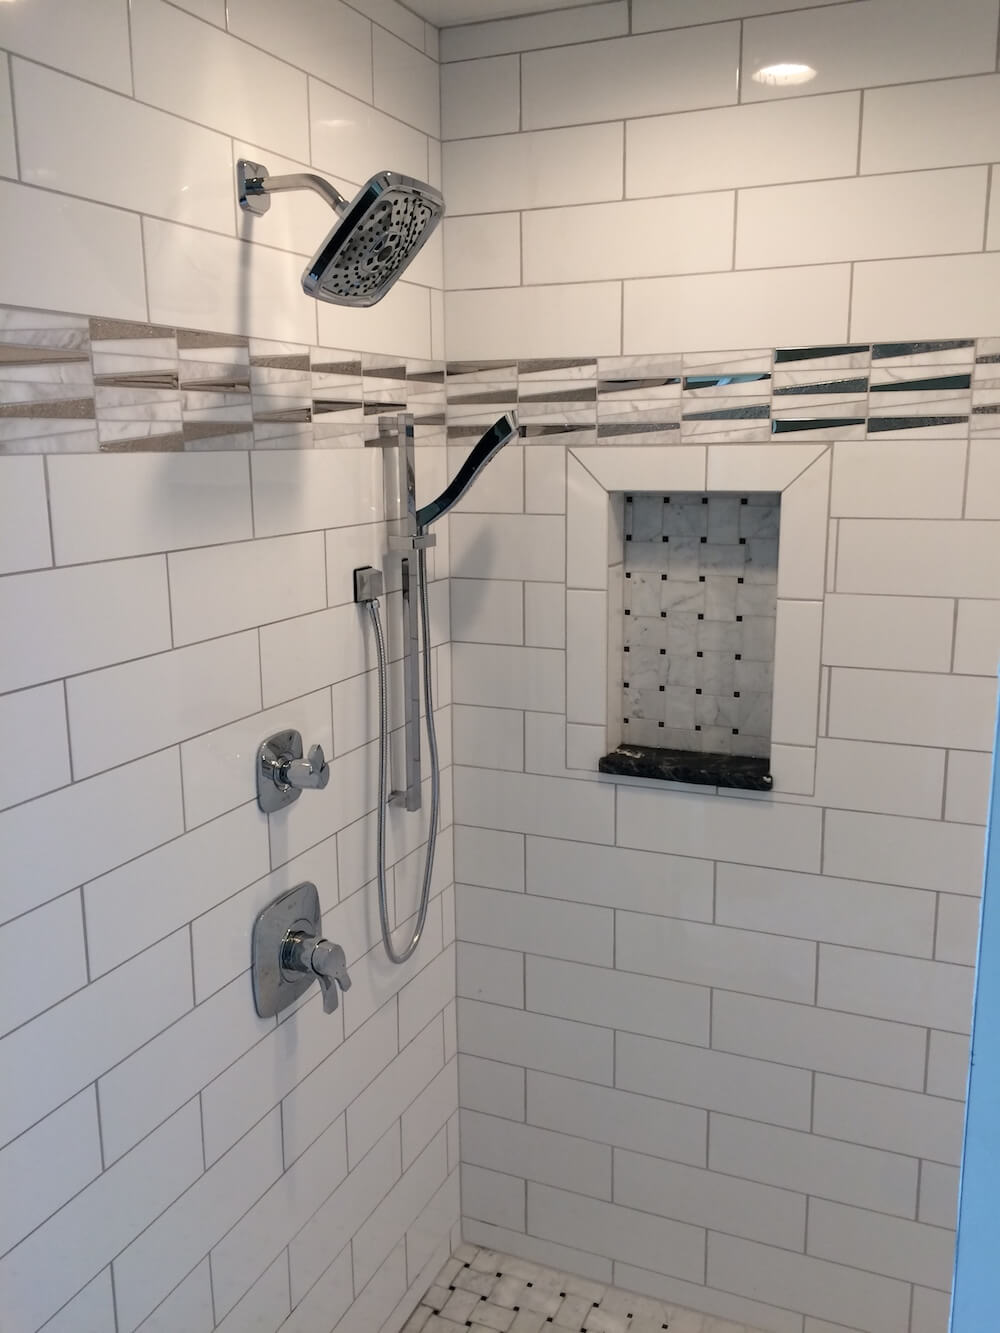 2018 Regrouting Shower Tile Cost | Regrout Shower Price